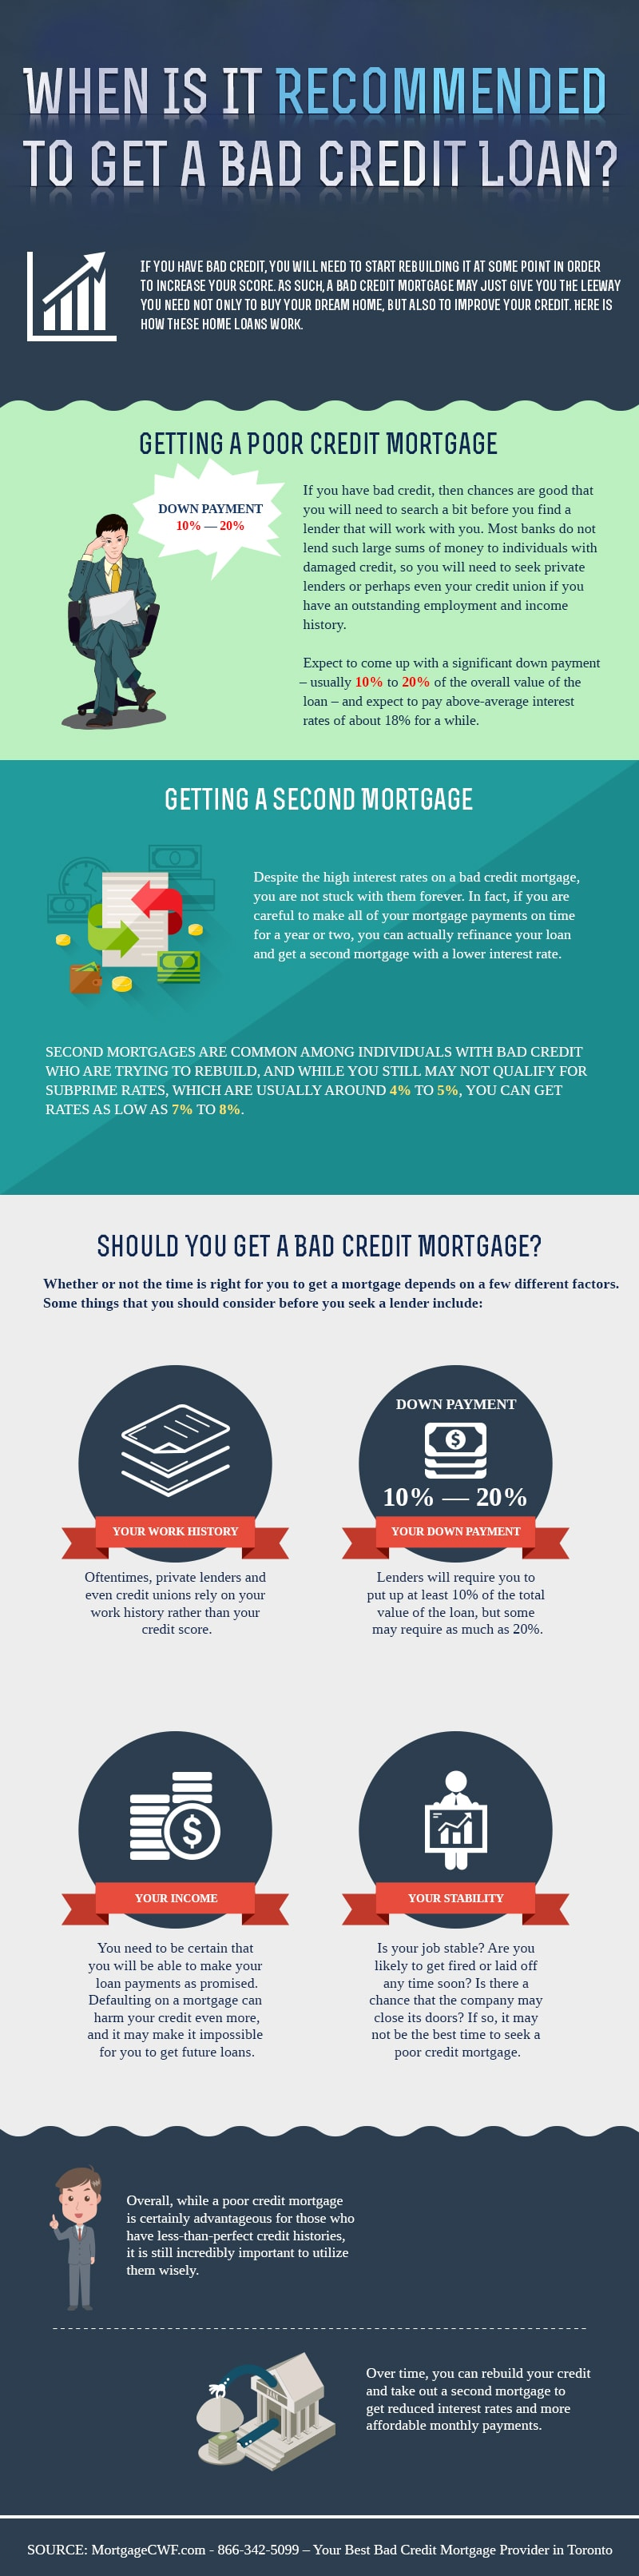 When Is It Recommended to Get a Bad Credit Loan?